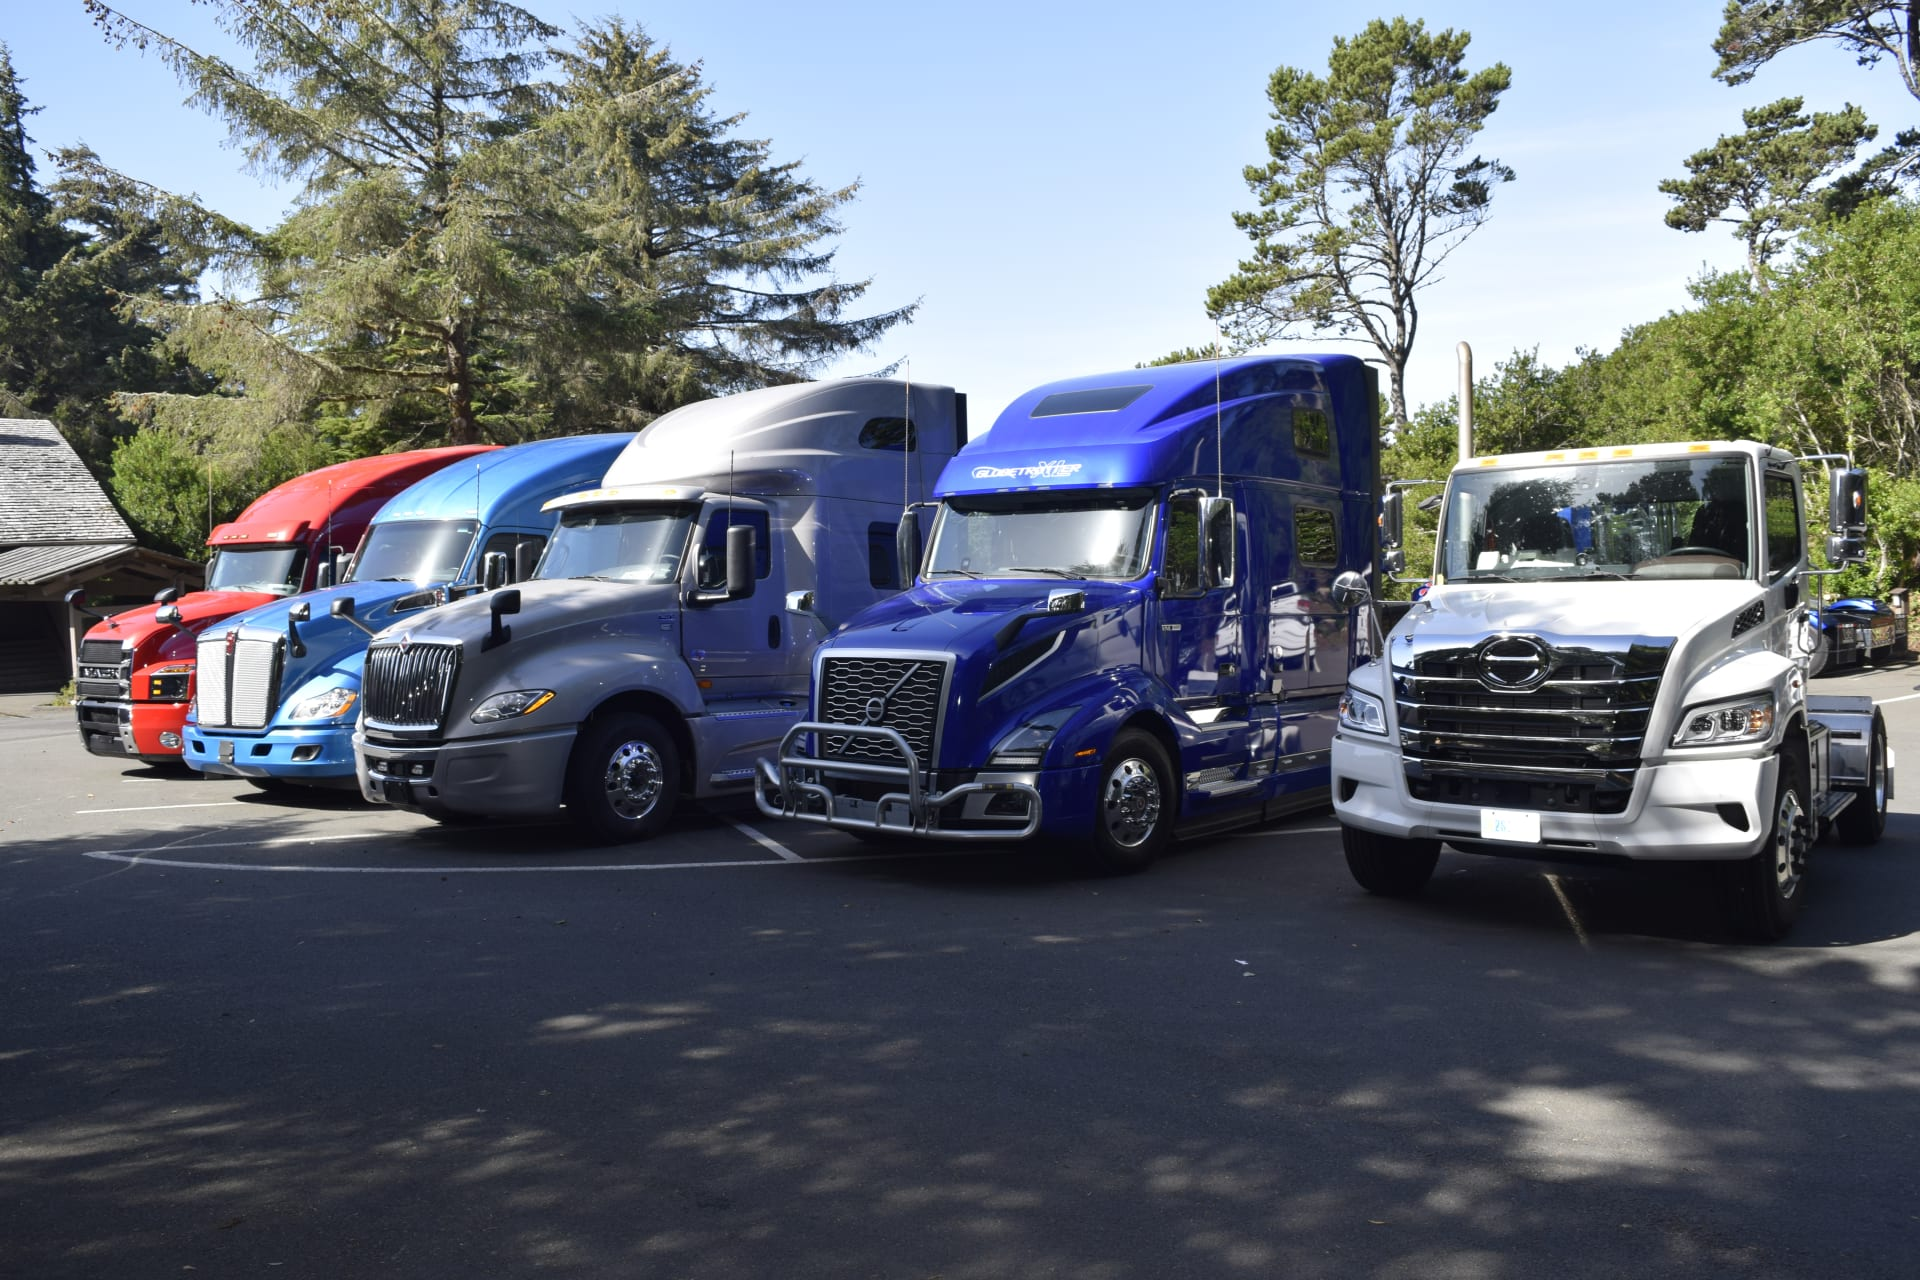 Trucks-Annual-Convention-2019.jpg